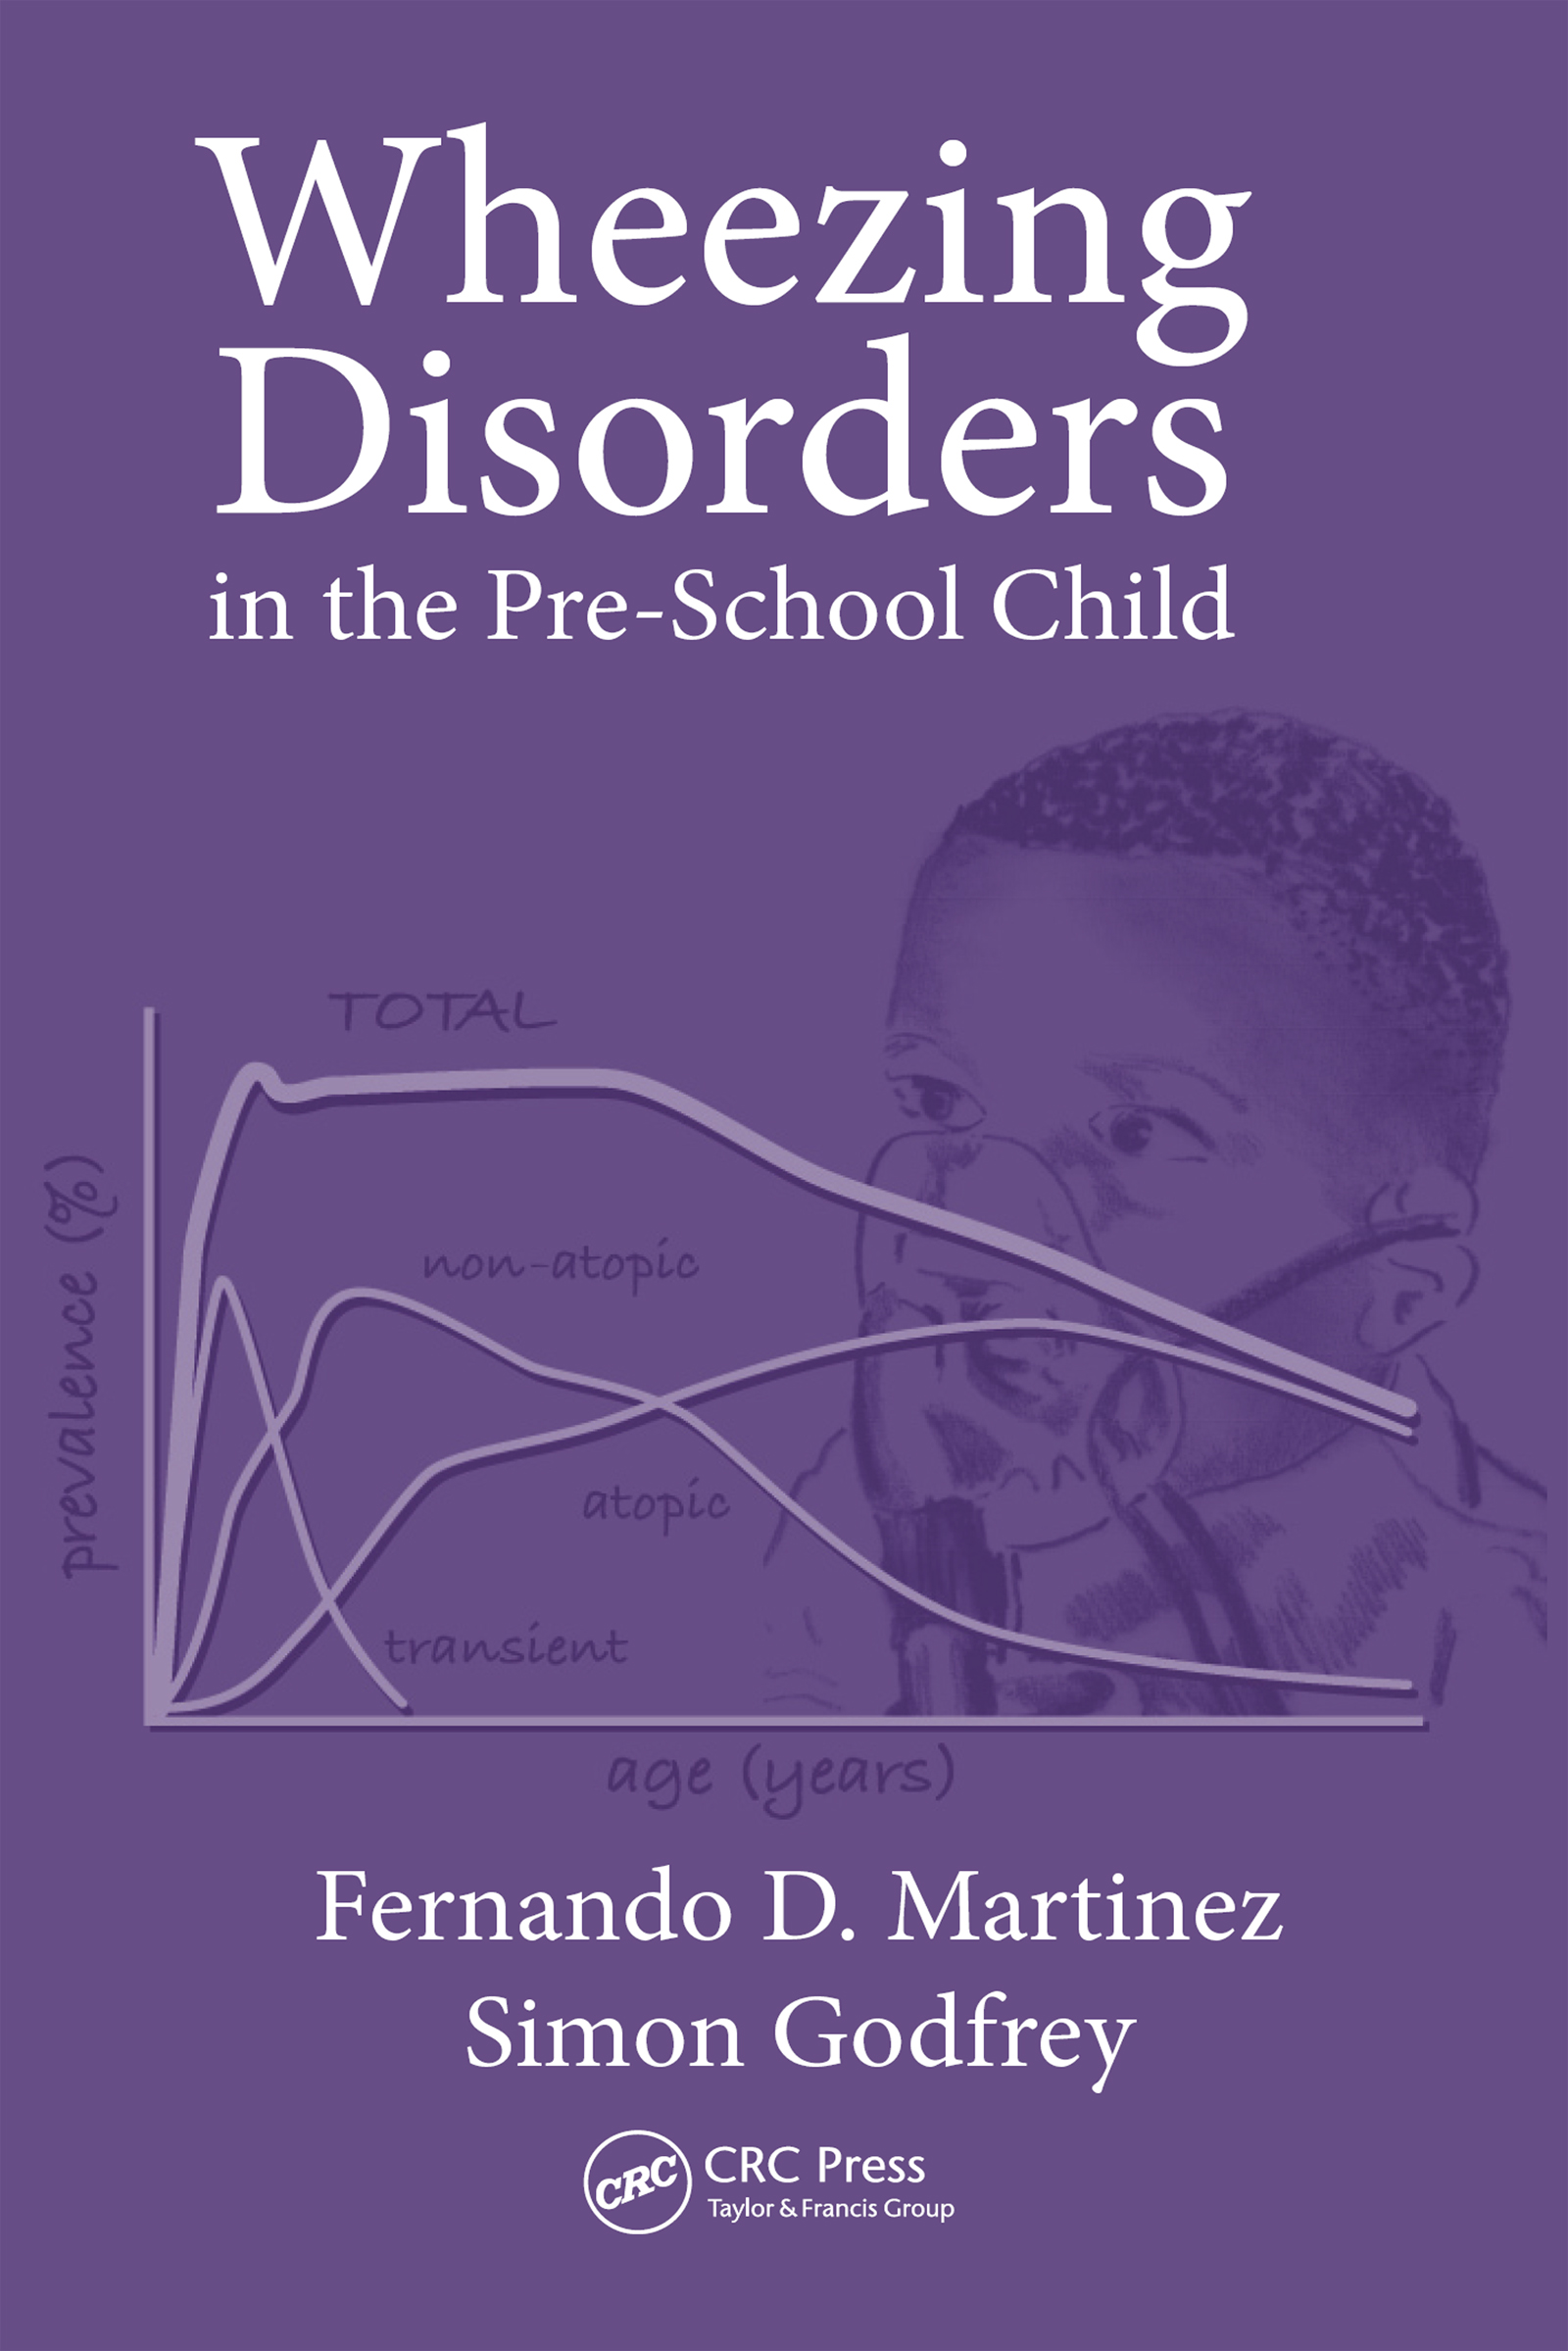 Wheezing Disorders in the Pre-School Child